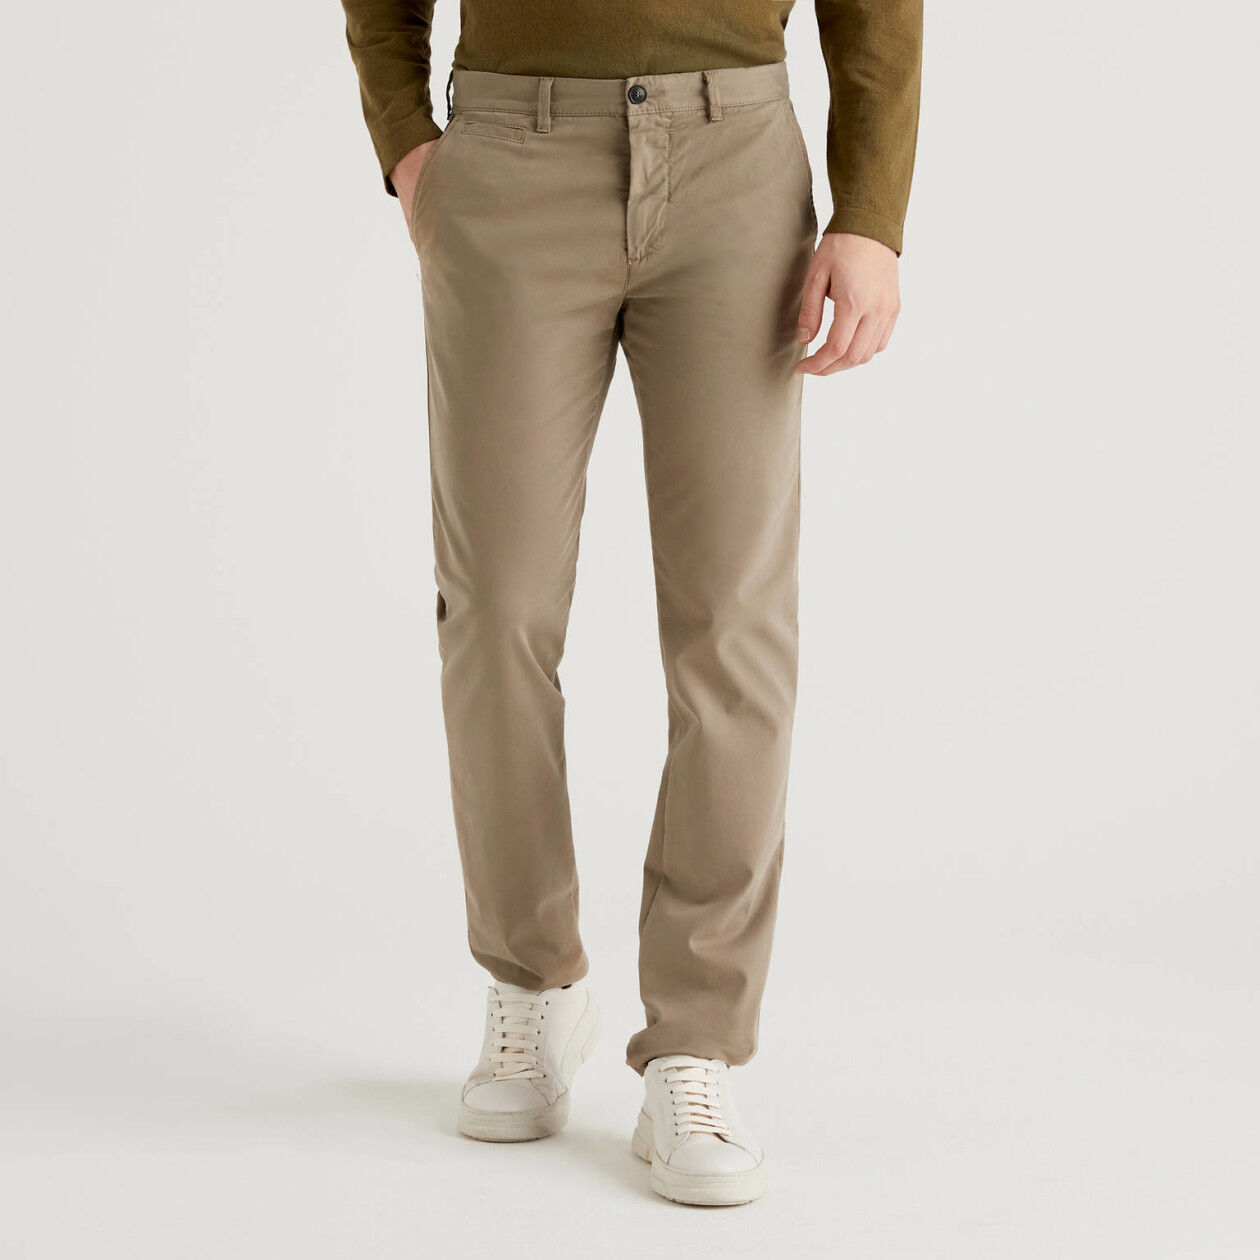 Dove gray slim fit chinos